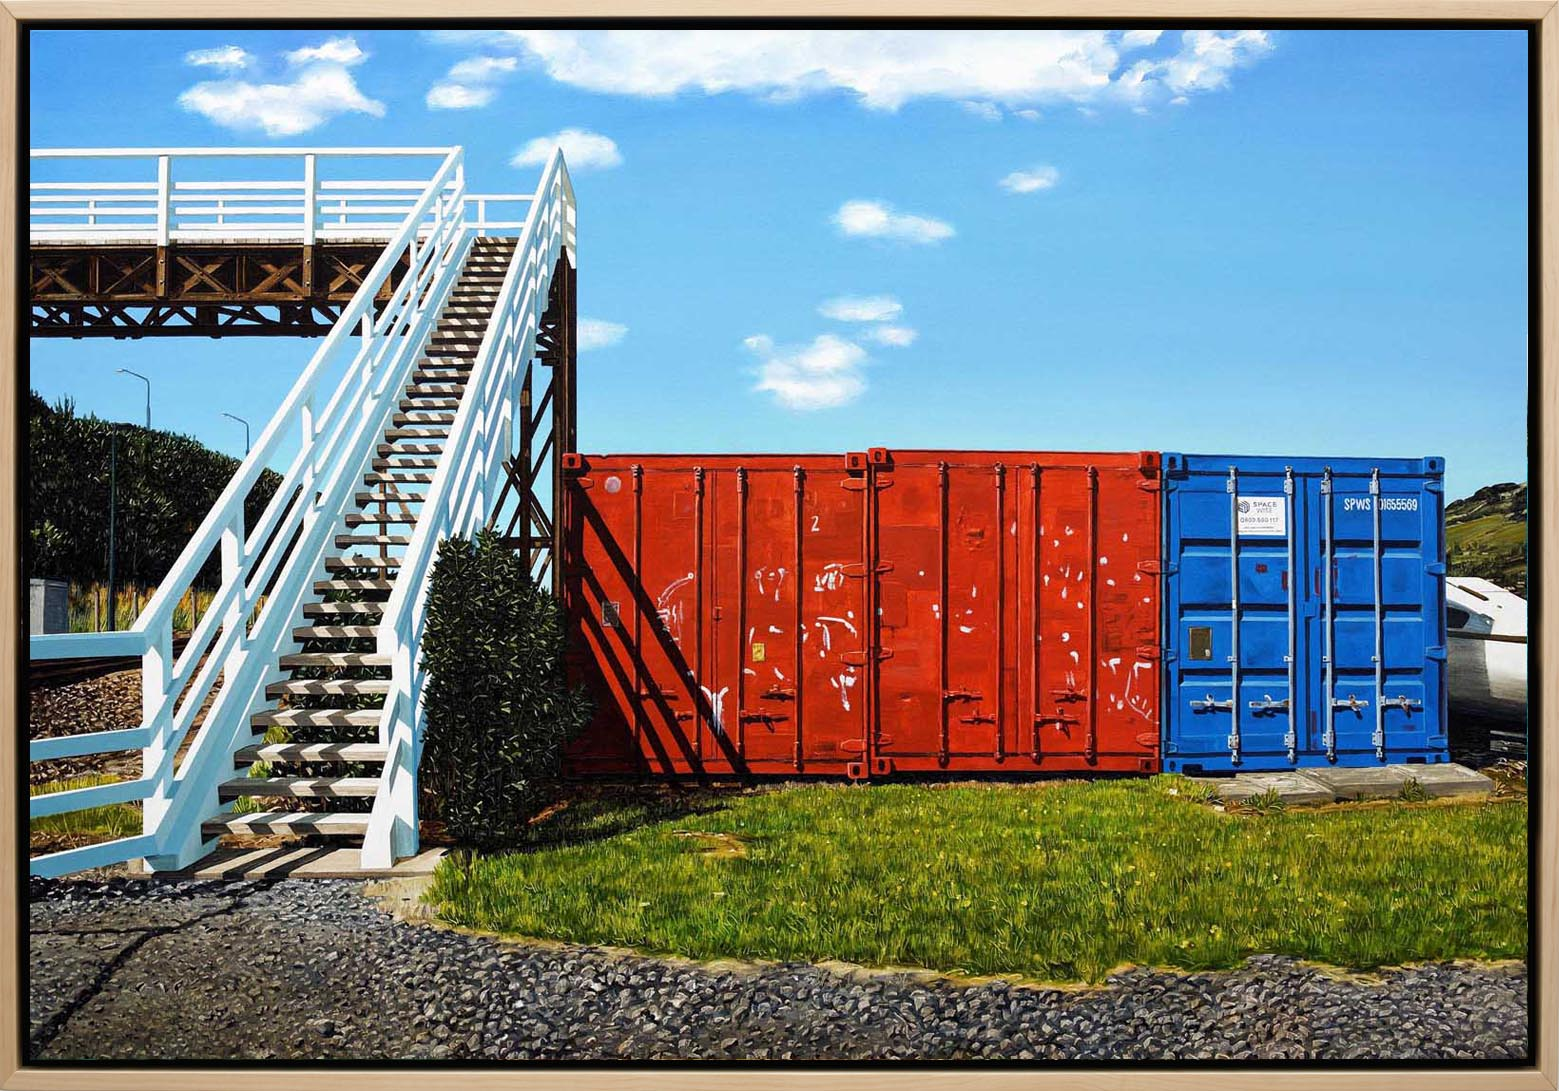 Containers and Overbridge